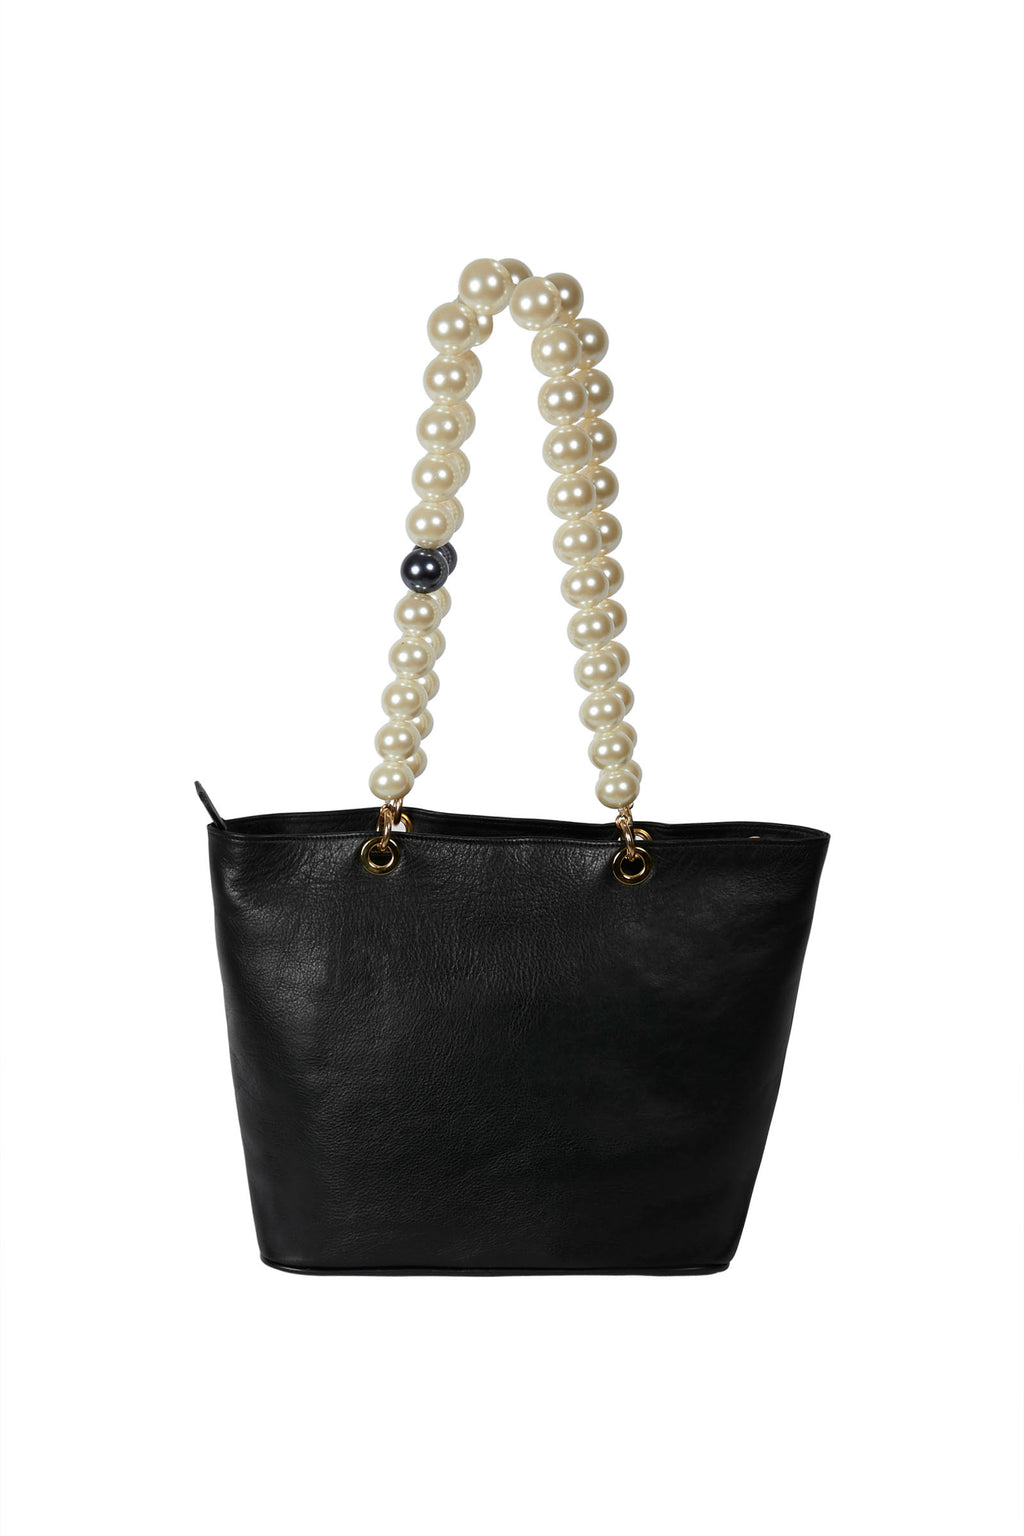 Short Pearl Bag Straps with Black Pearl